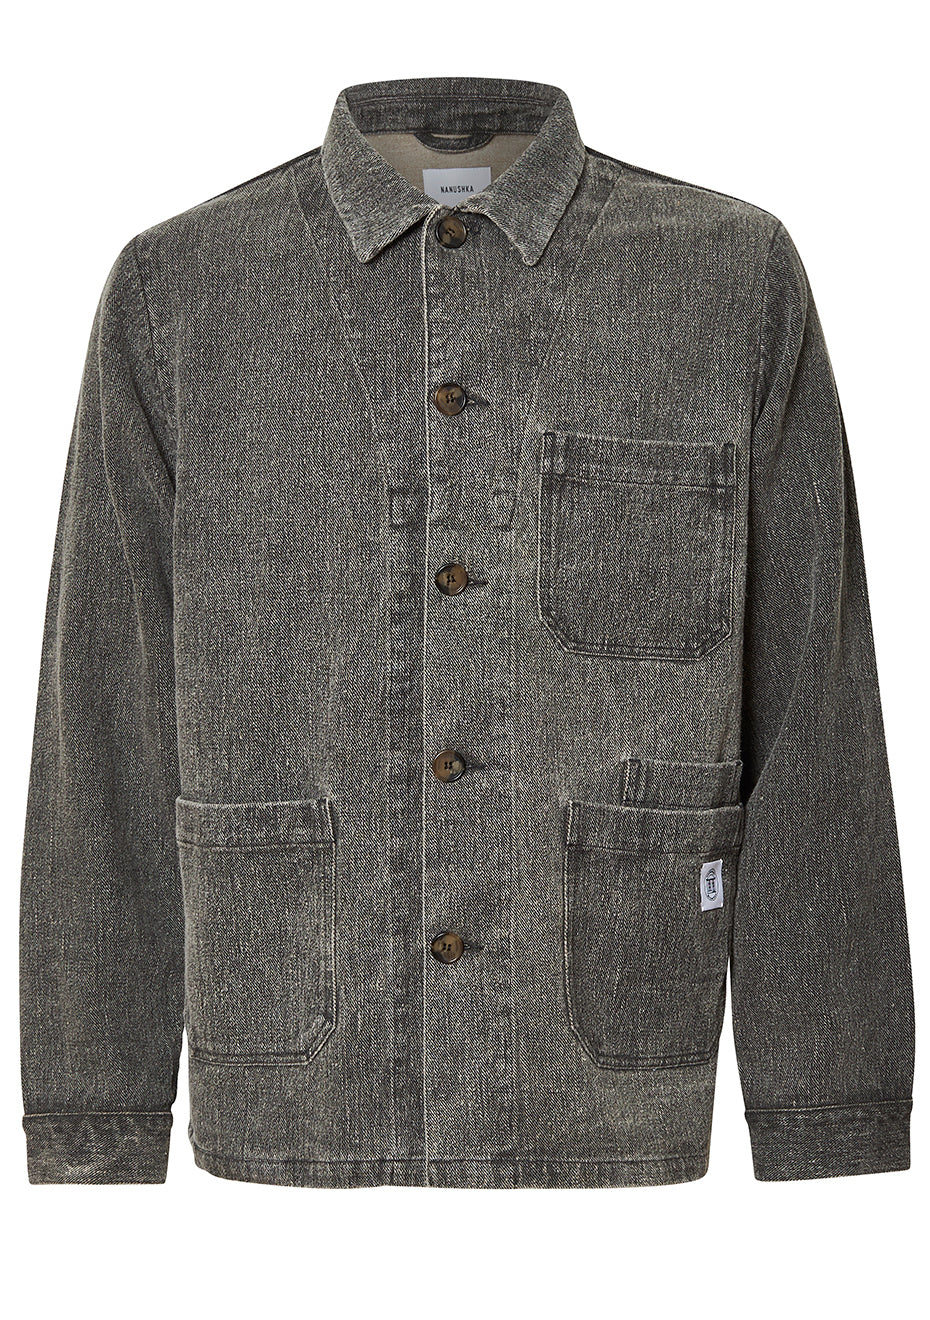 Theo Denim Black Studio Jacket